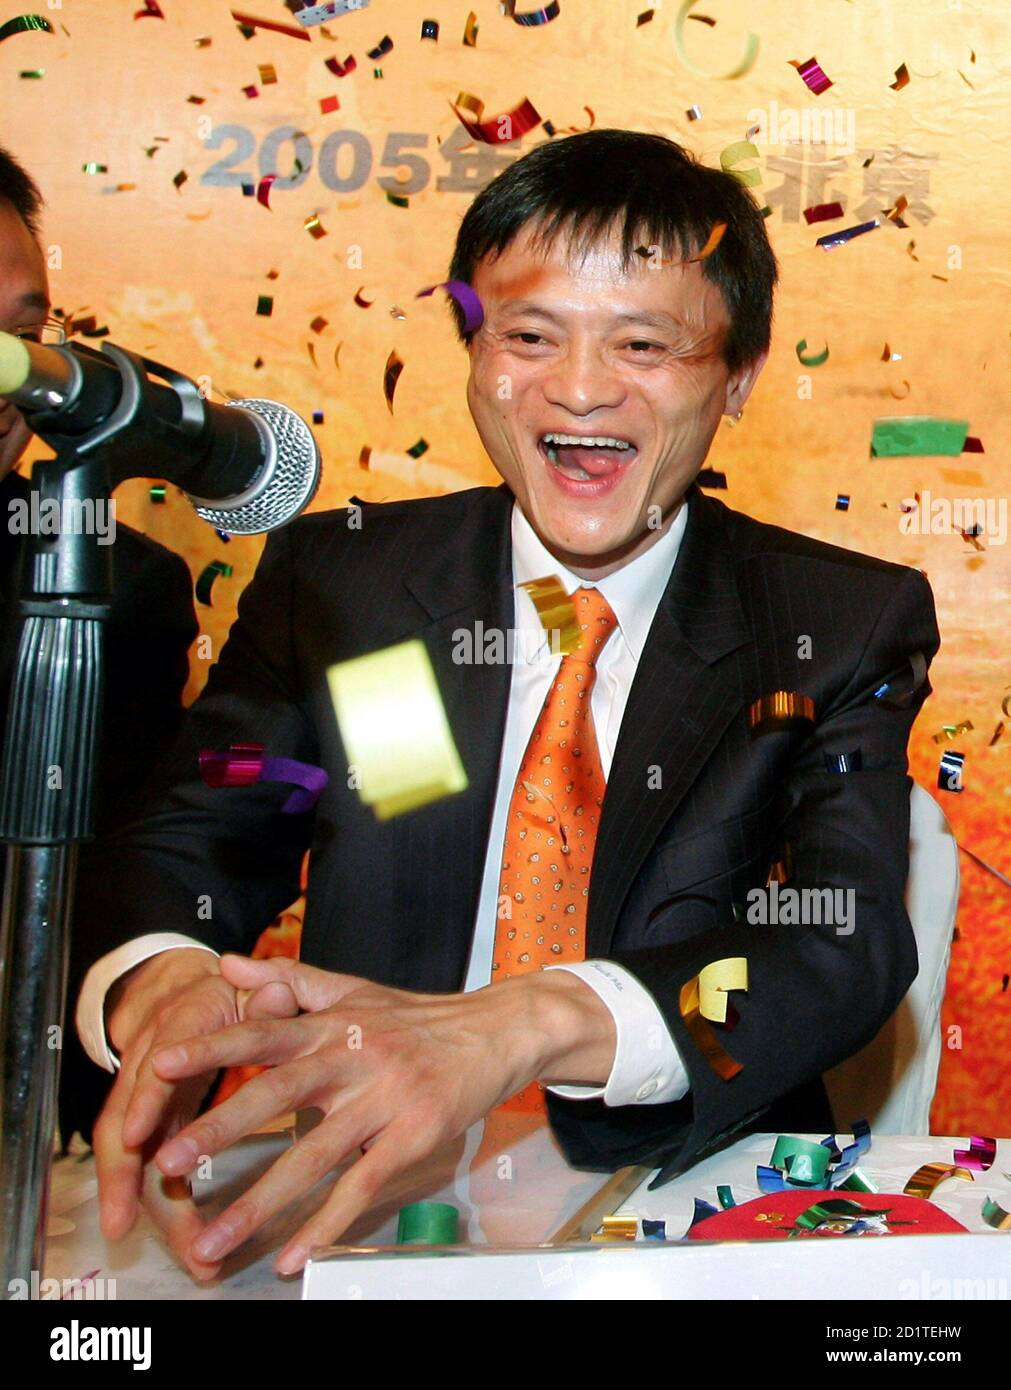 Alibaba Com Chairman And Ceo Jack Ma Smiles Amidst Confetti After The Alibaba Yahoo Joint News Conference In Beijing August 11 2005 Yahoo Inc Said On Thursday It Will Pay 1 Billion In Cash Alibaba group holding ltd (baba:nyse). alamy